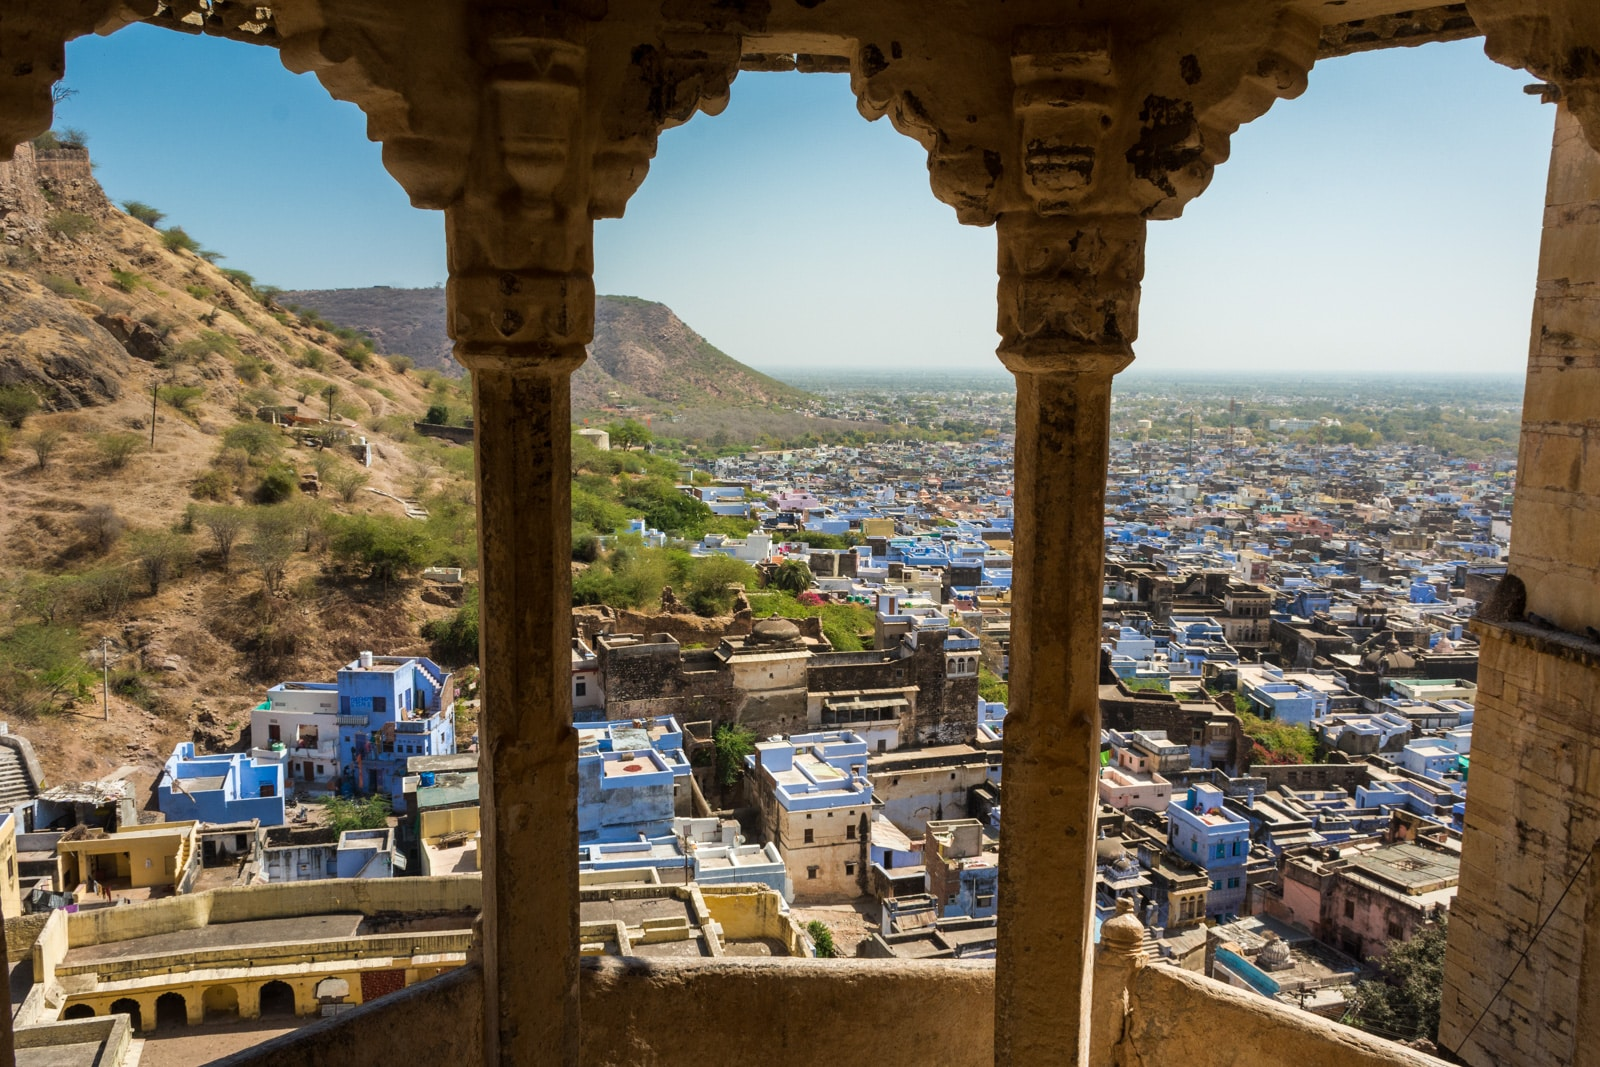 View of blue houses from the palace in Bundi, Rajasthan, India